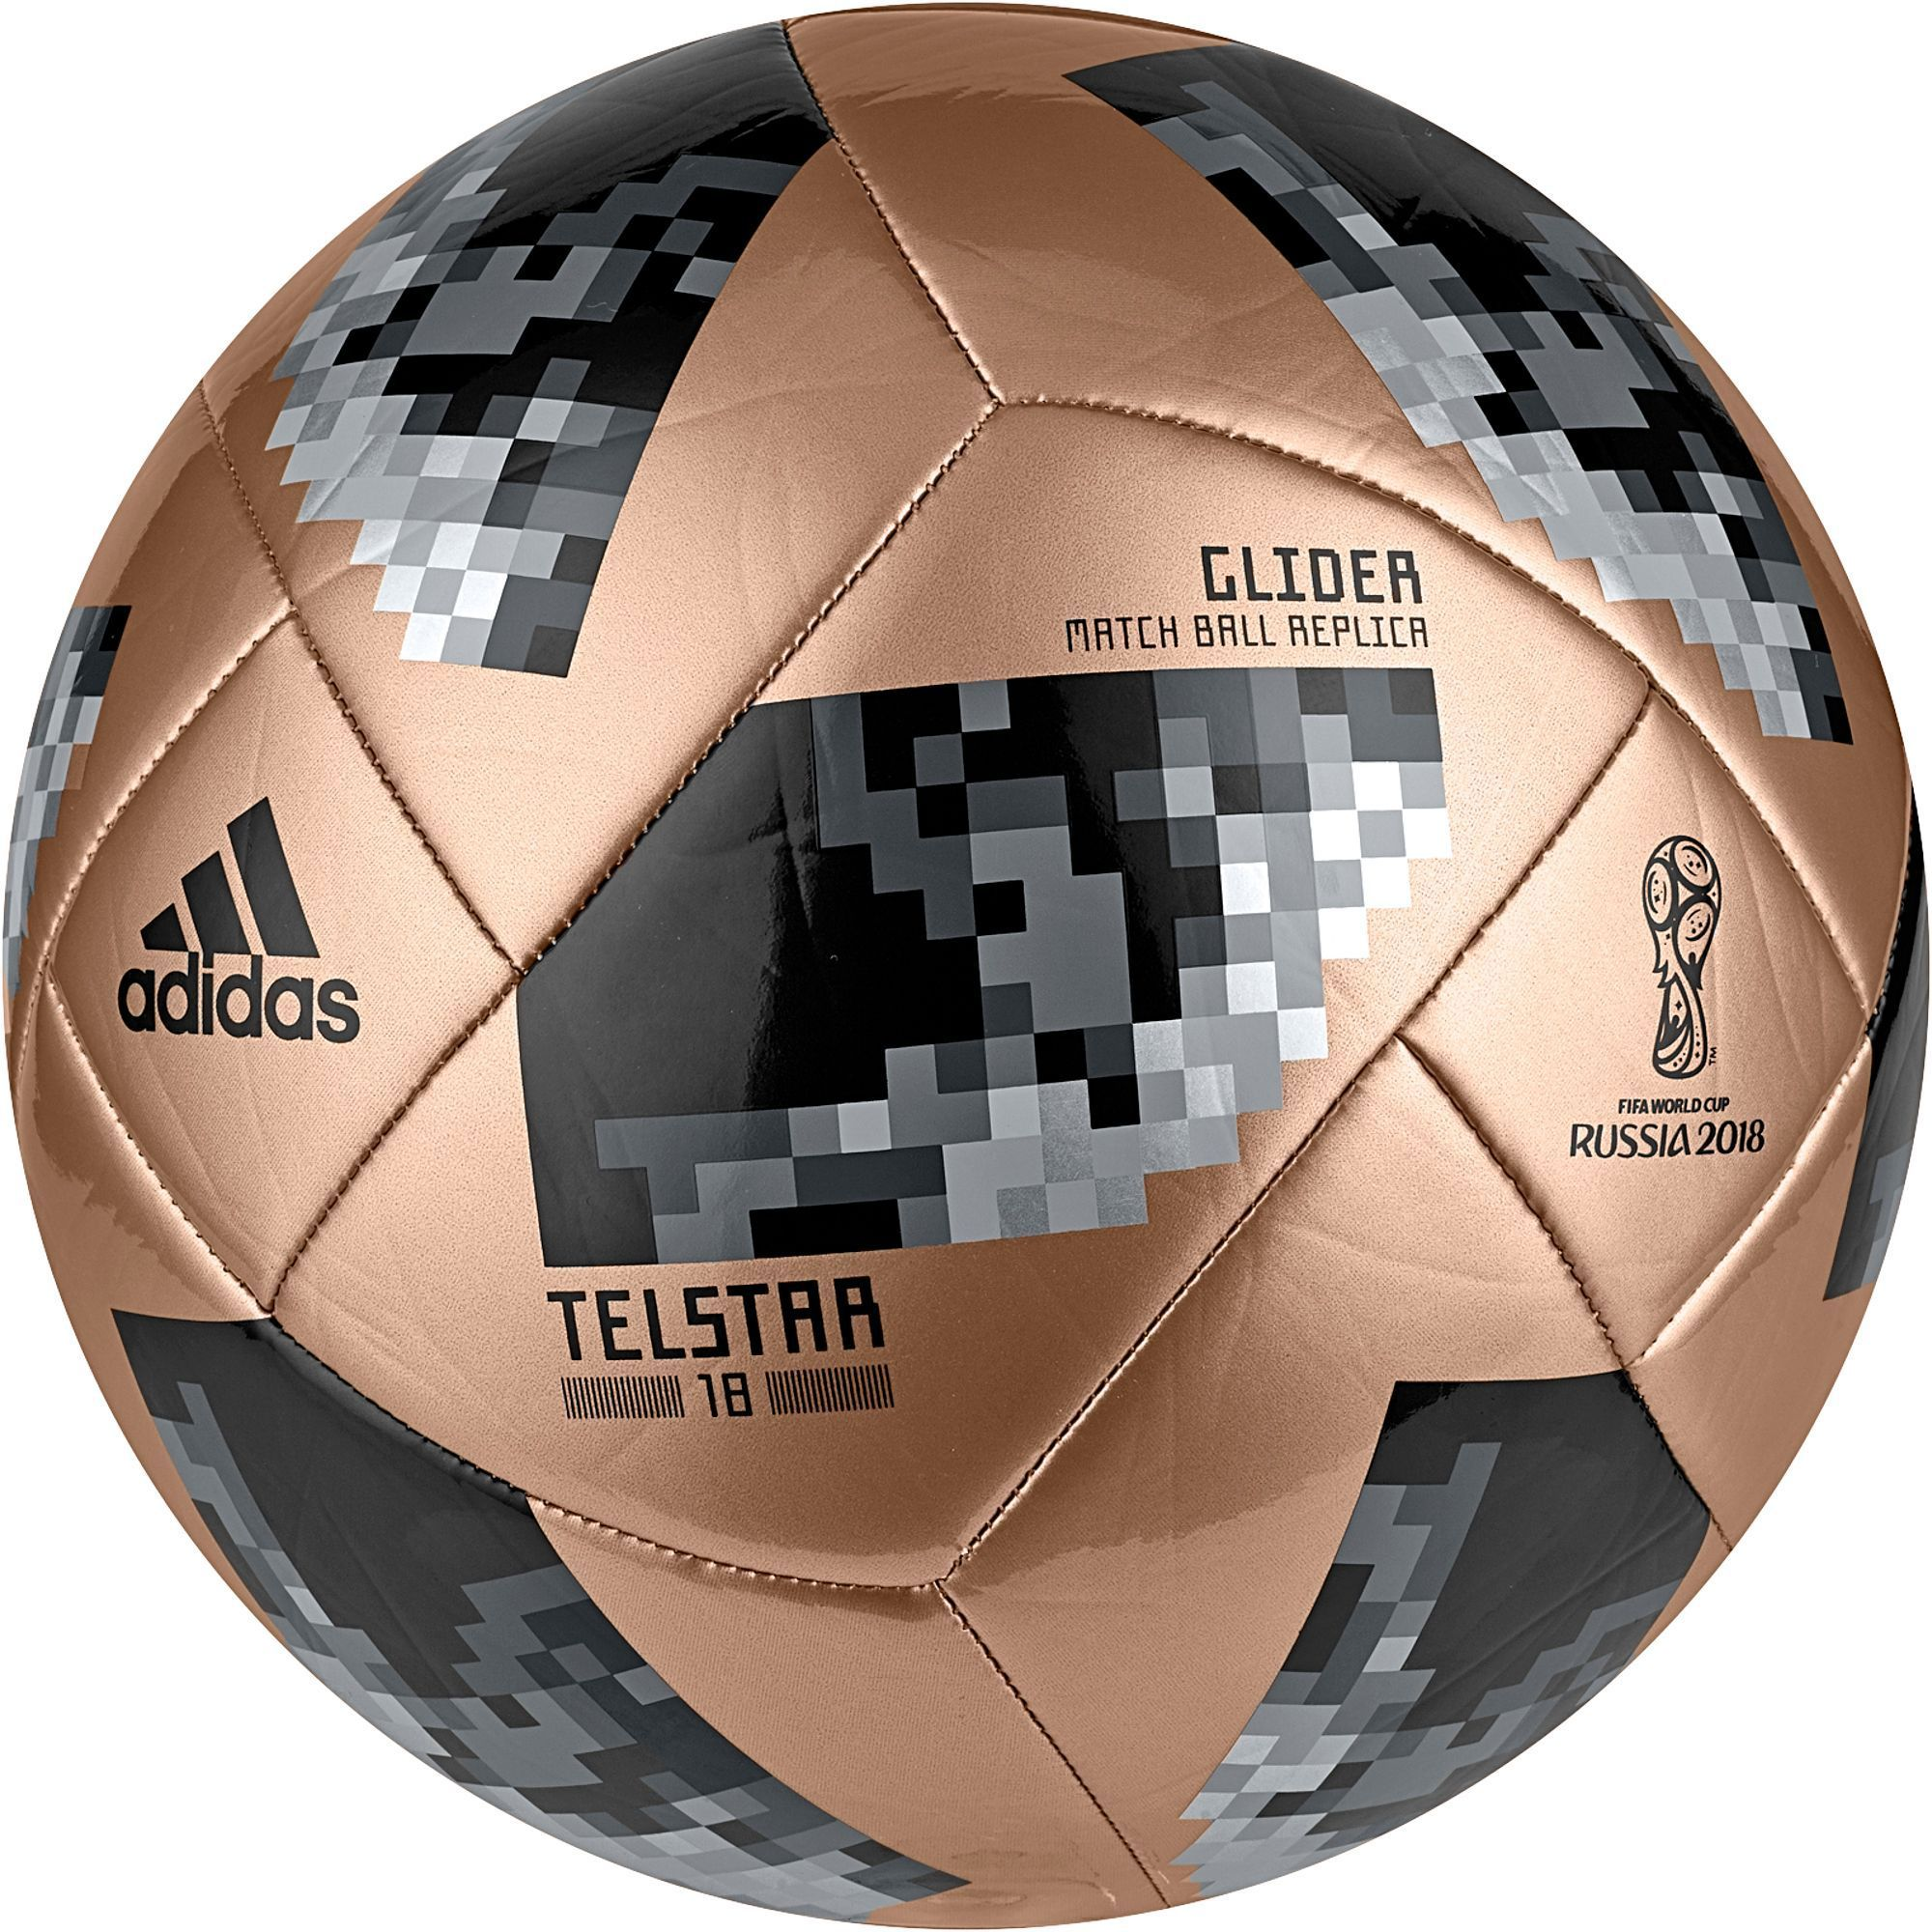 big sale ce39a 3554c adidas 2018 Fifa World Cup Russia Telstar Glider Soccer Ball, Gold Black   worldcupsoccerball